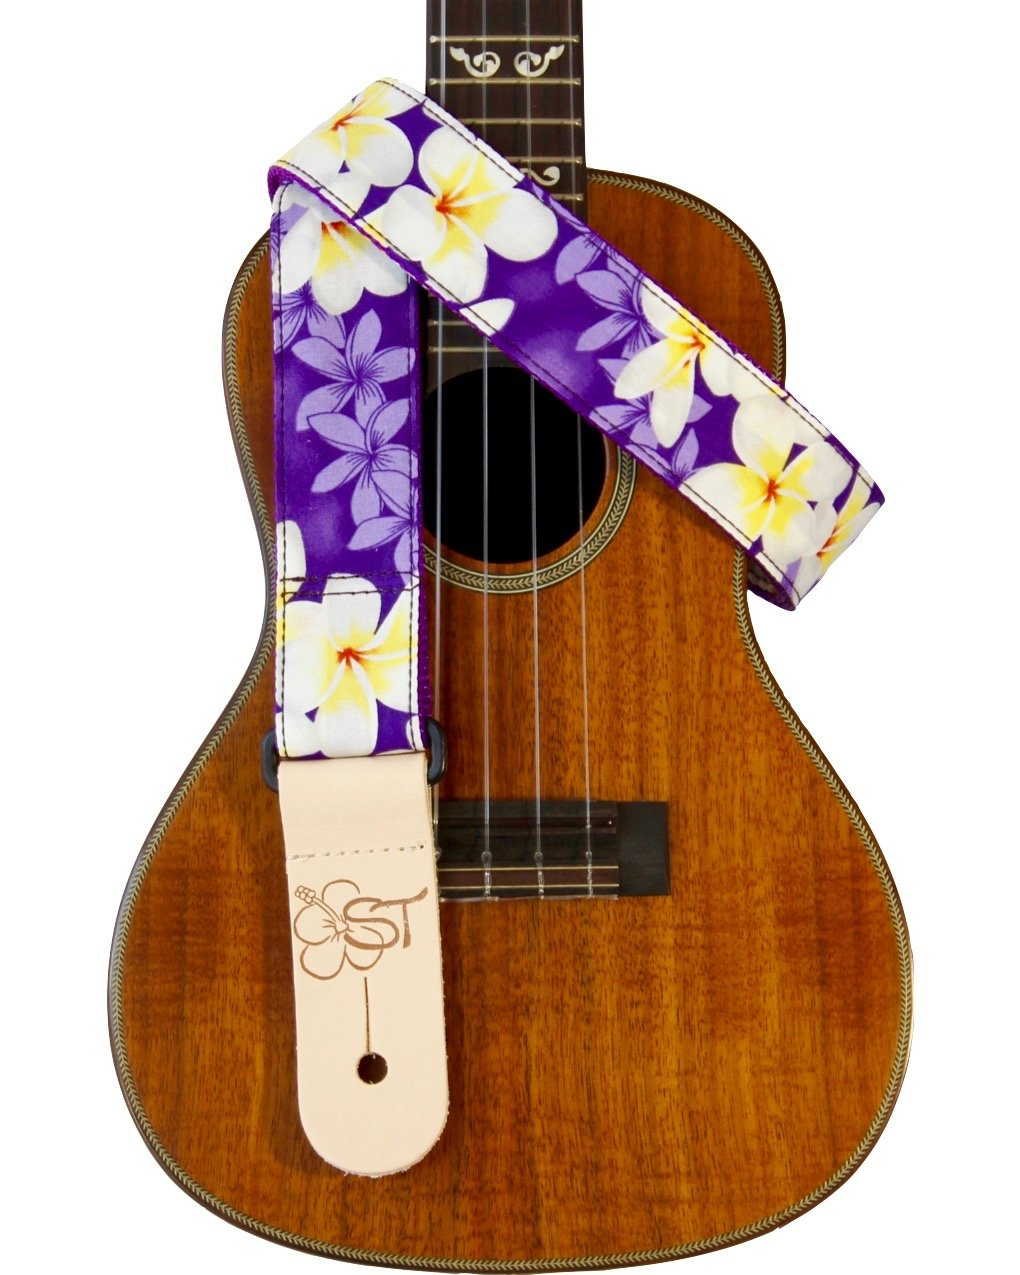 Sherrin's Threads 1.5 Hawaiian Print Ukulele Strap - Purple Plumeria